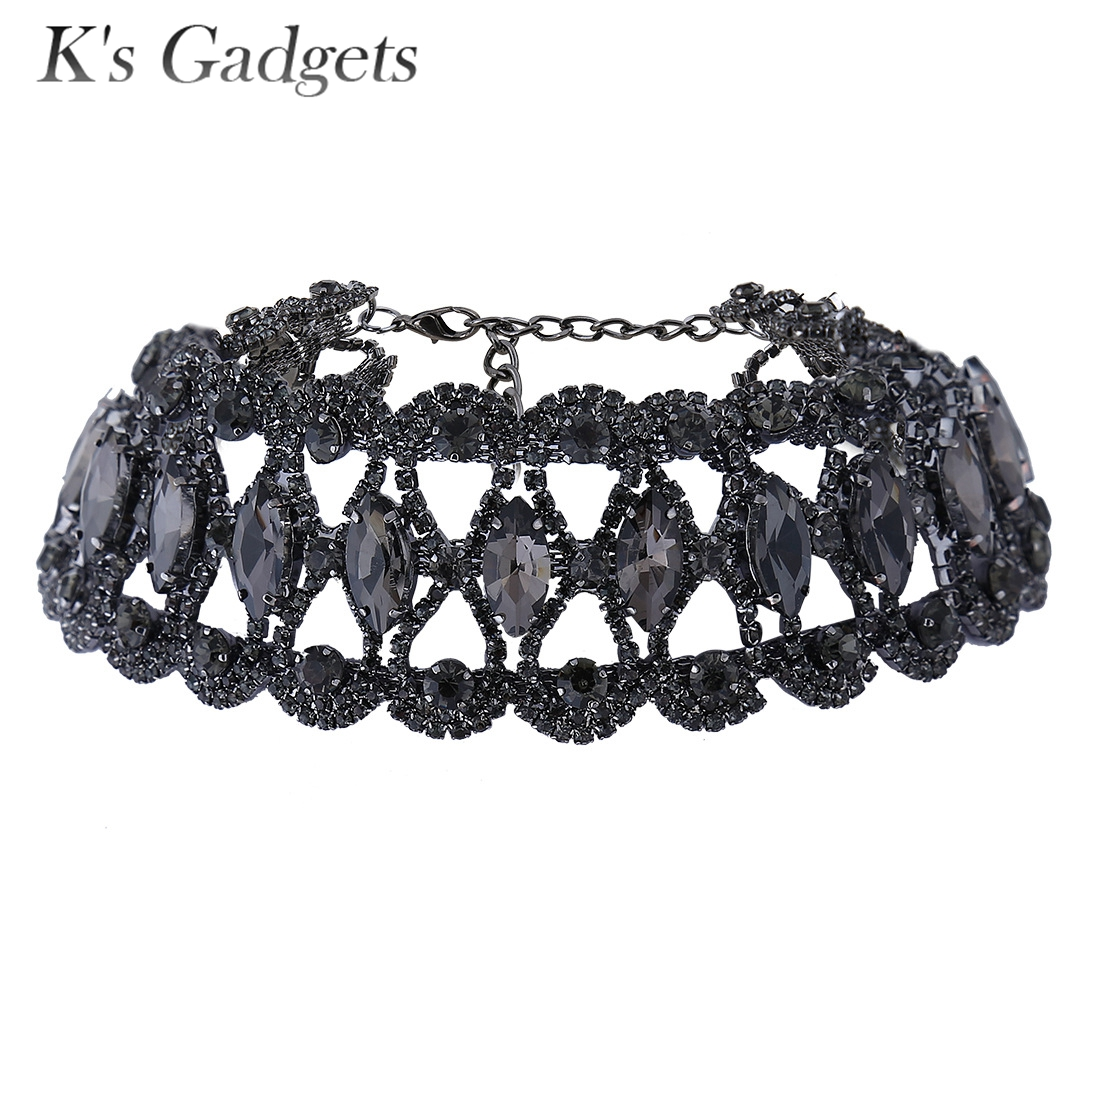 K's Gadgets Black Rhinestone Crystal Pendant Necklace Fashion Jewelry  Collar Choker Chunky Statement Necklaces For Women